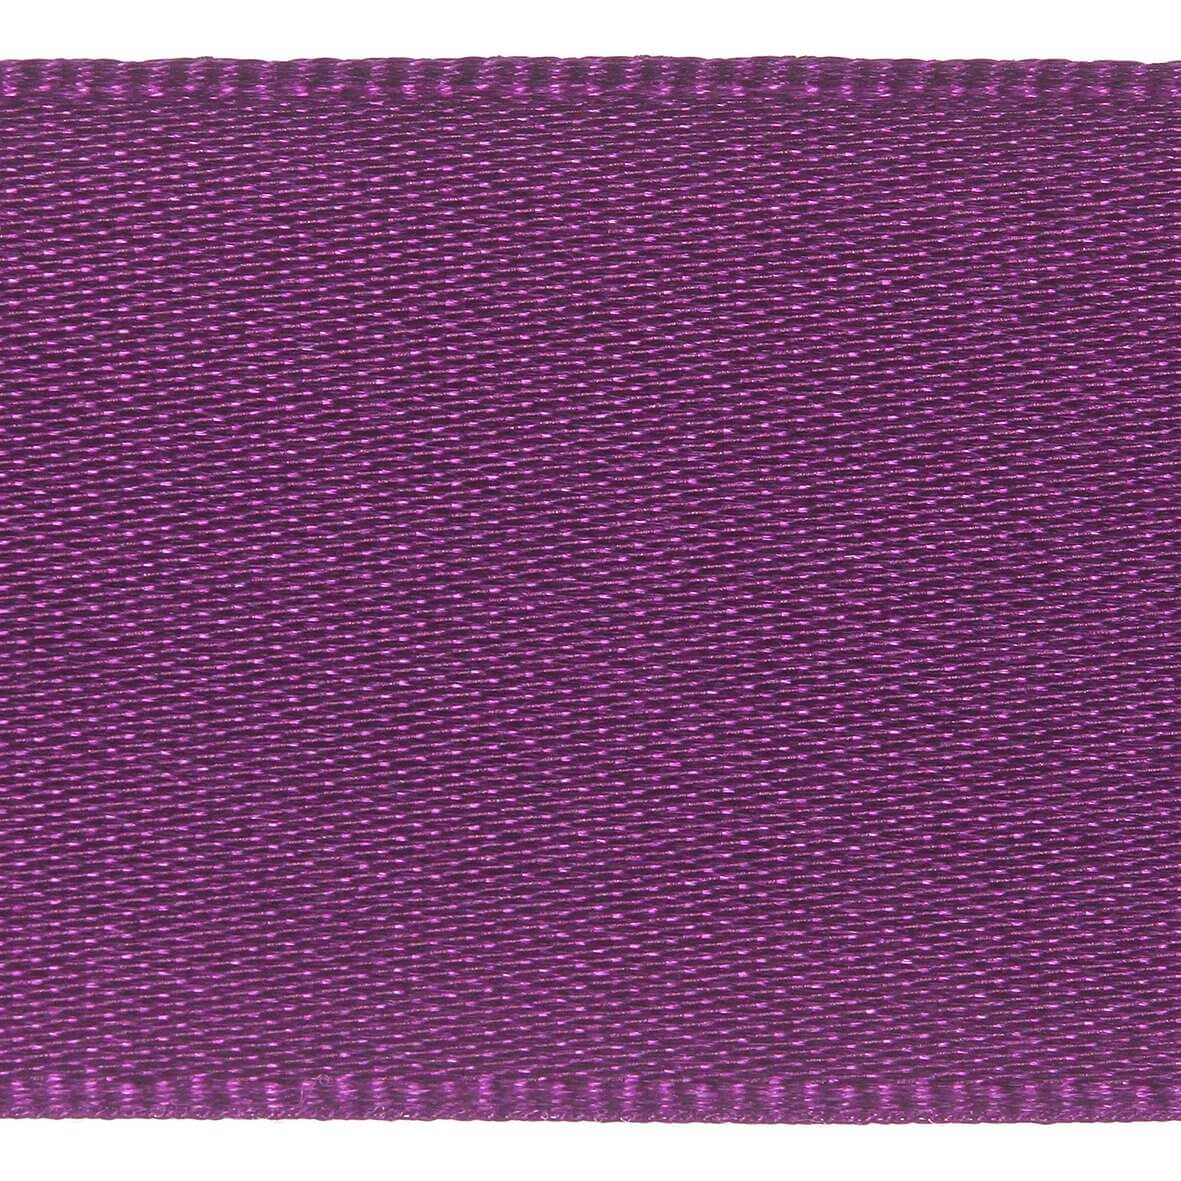 25mm Berisfords Satin Ribbon - Plum Colour 49